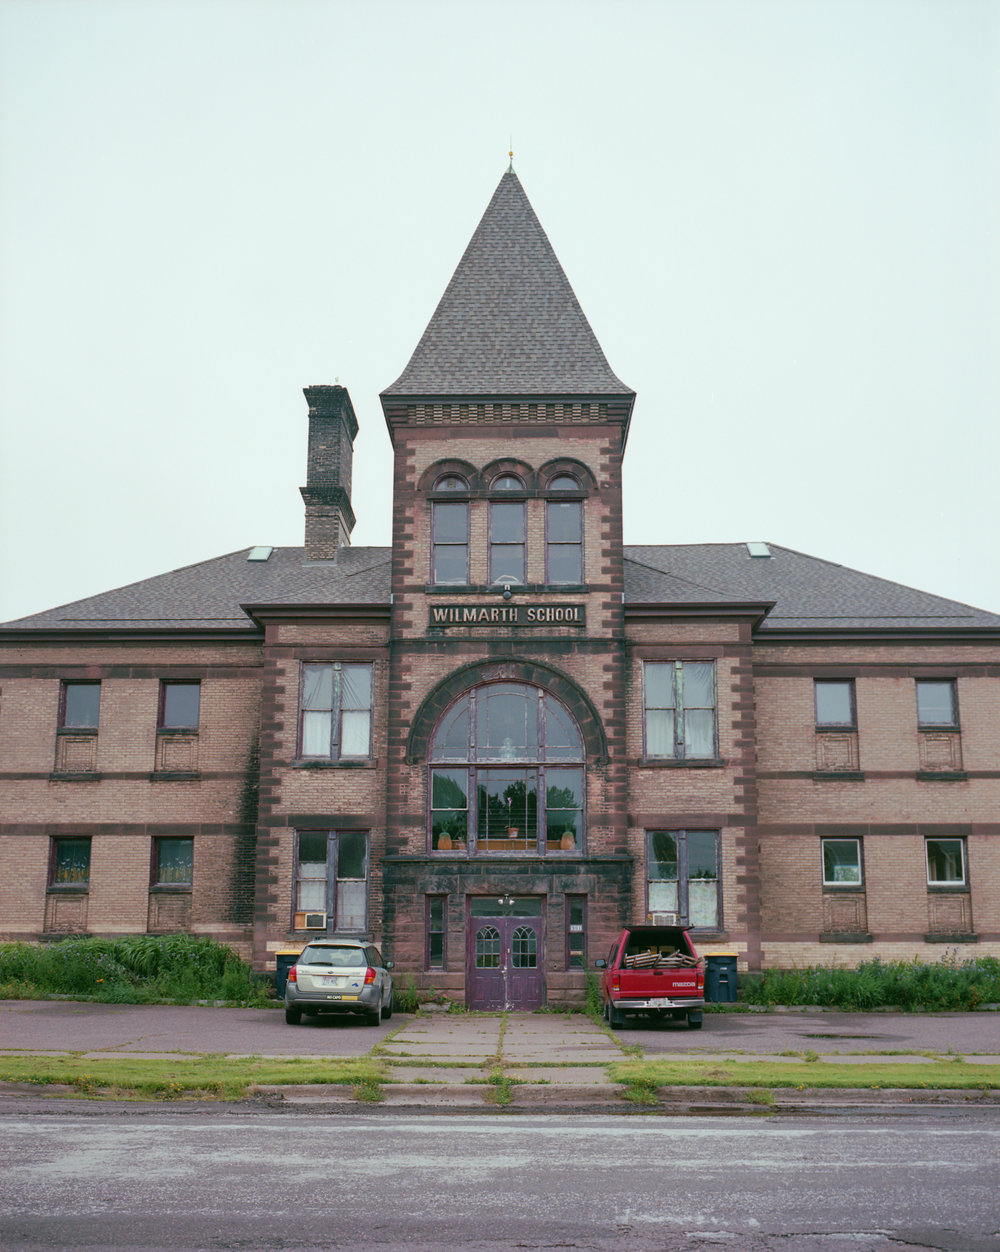 My grandmother's elementary school, now converted into an apartment building